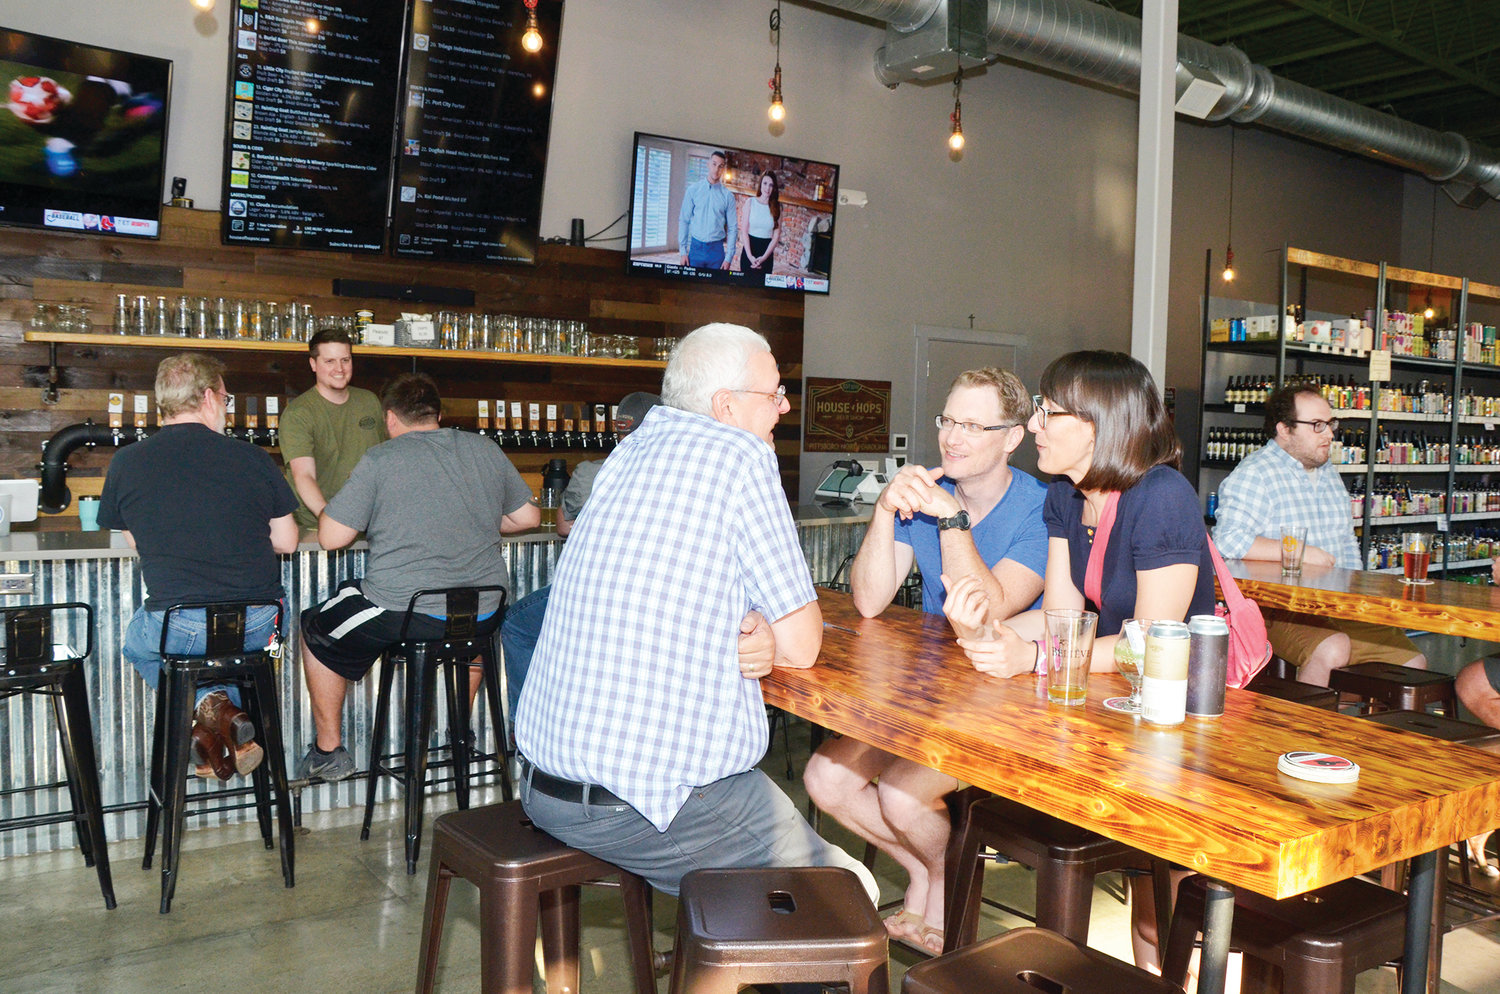 The House of Hops offers the local community a place to go, relax and meet new people.